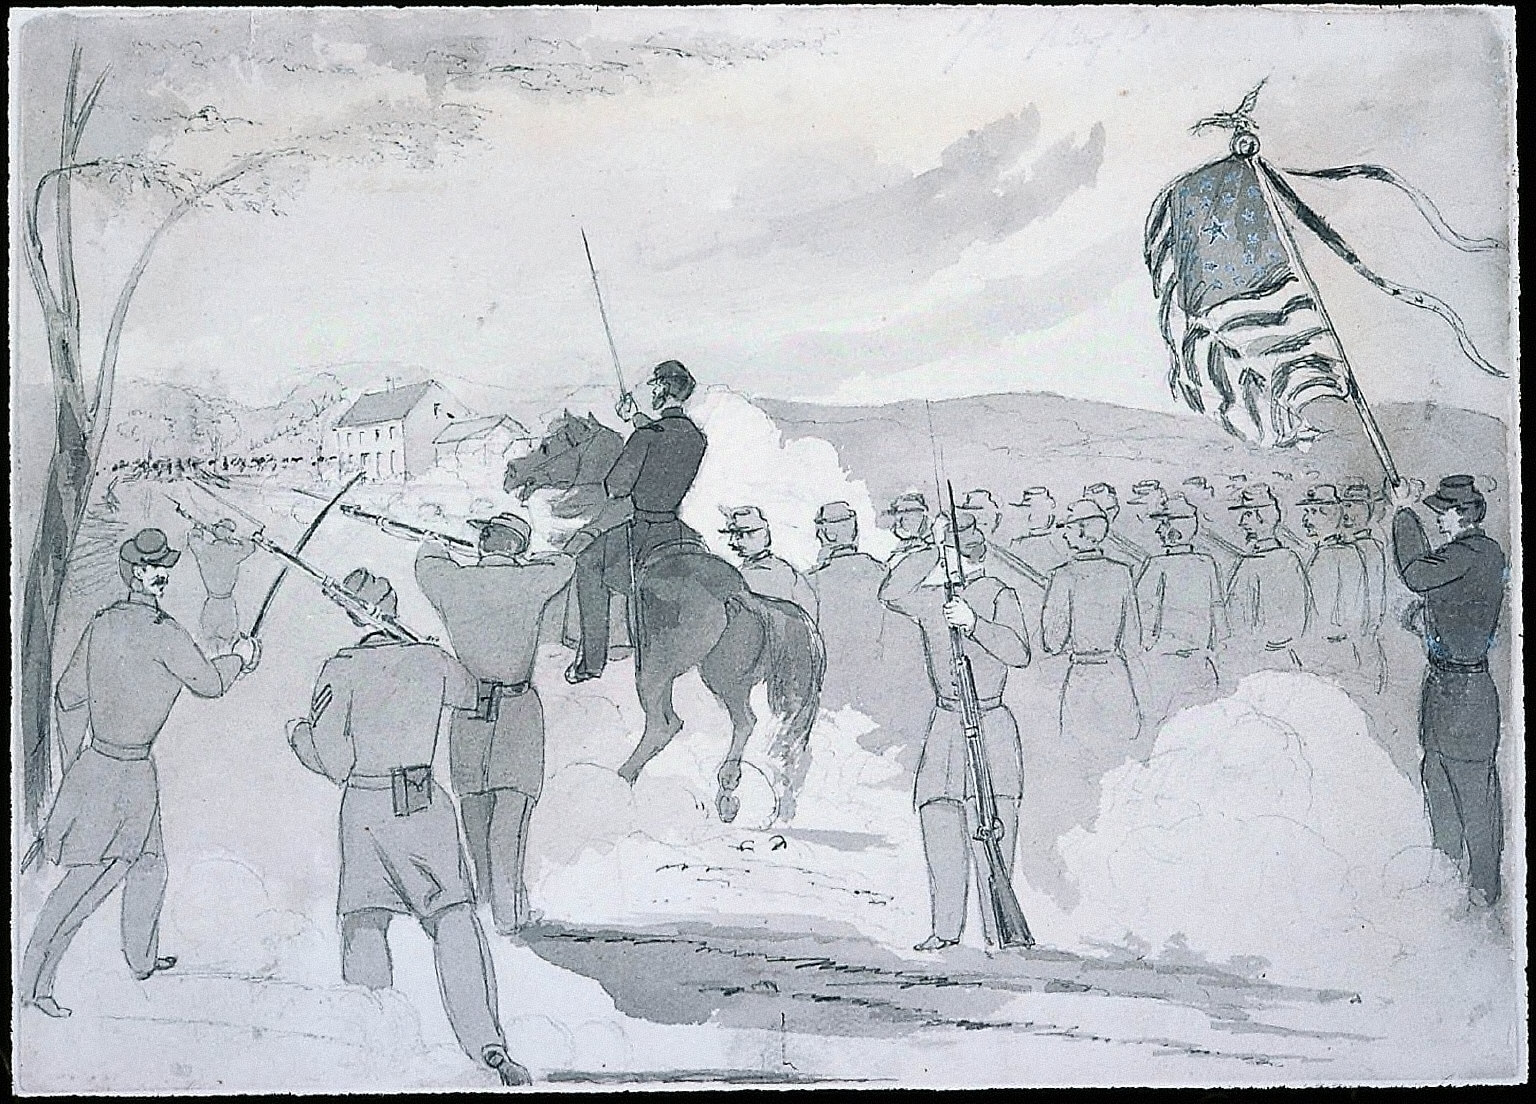 Col. Starkweather with his Wisconsin Regiment